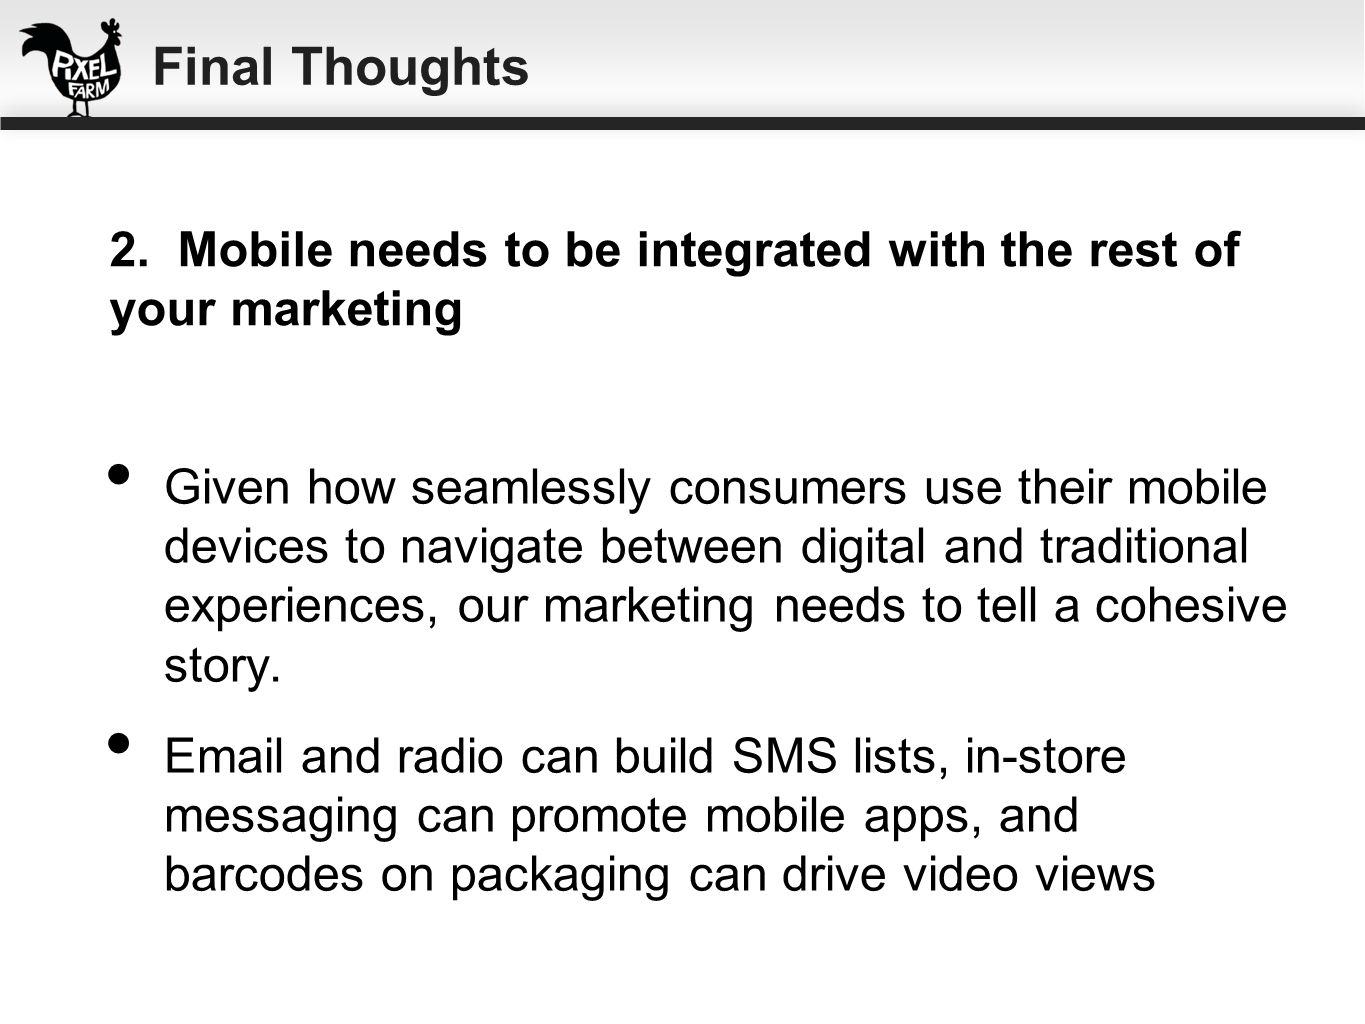 Given how seamlessly consumers use their mobile devices to navigate between digital and traditional experiences, our marketing needs to tell a cohesiv